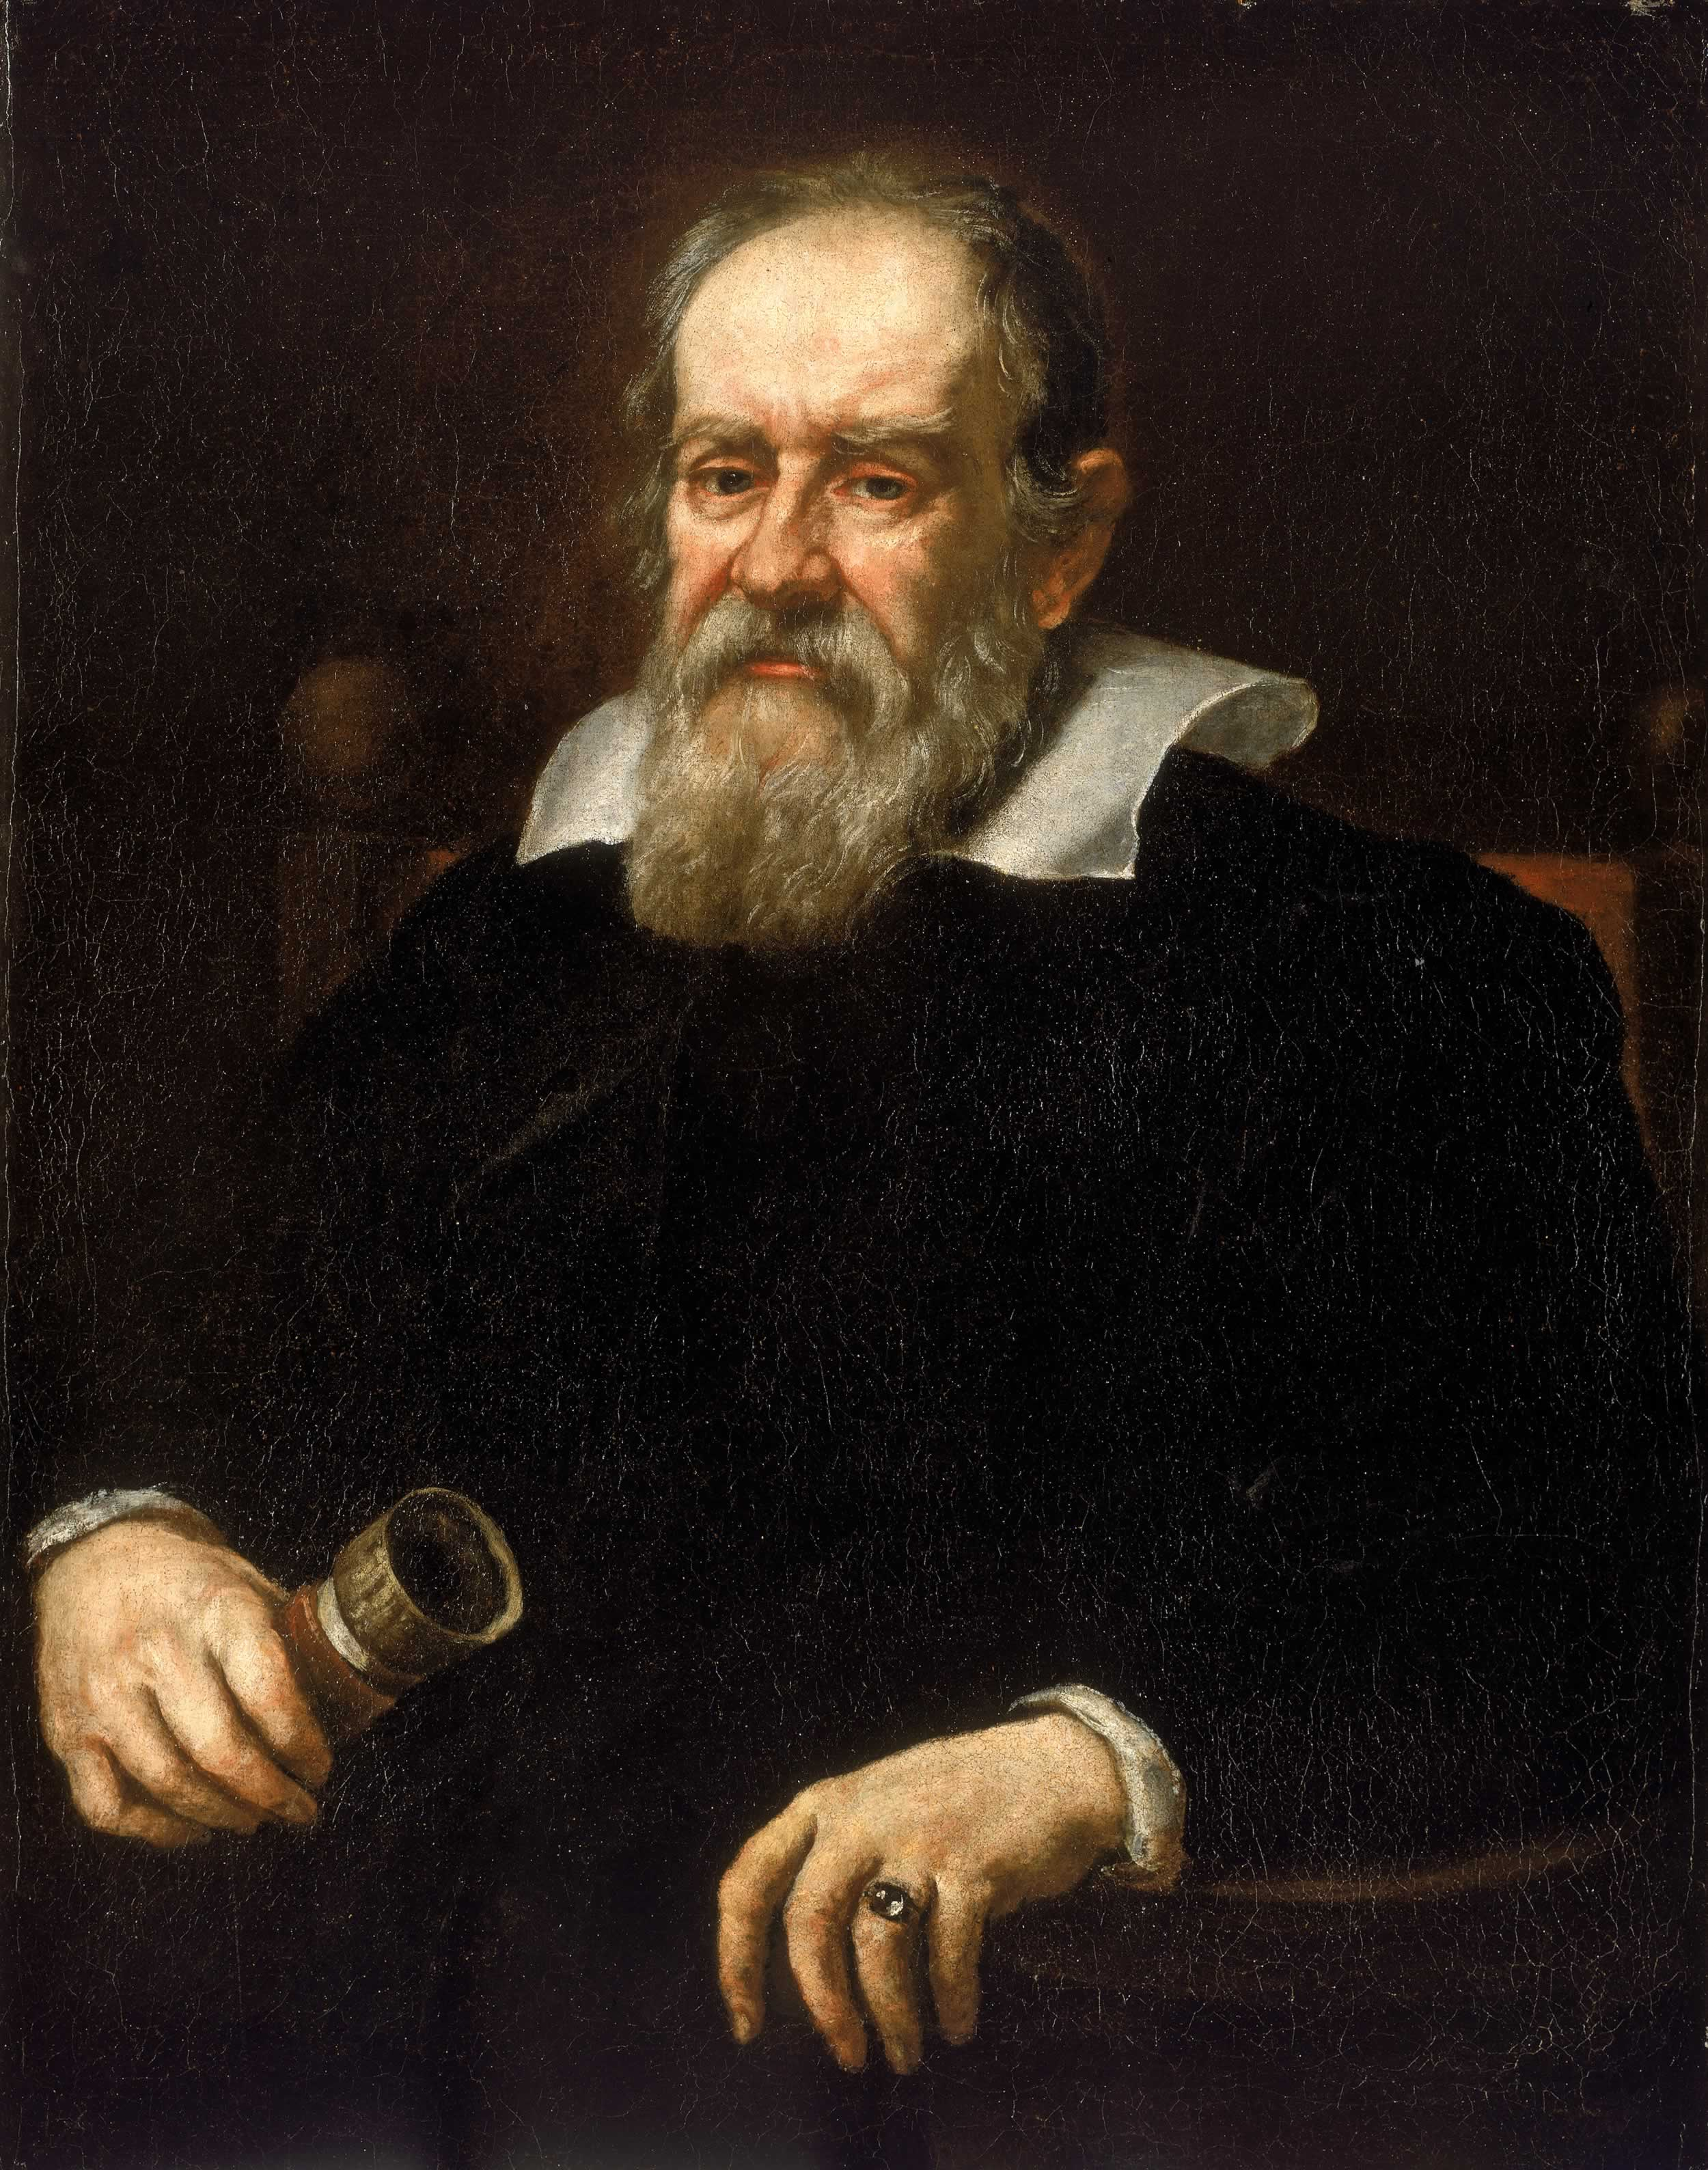 Galileo Galilei, the astronomical heretic   Justus Sustermans/Wikimedia Commons  (public domain)